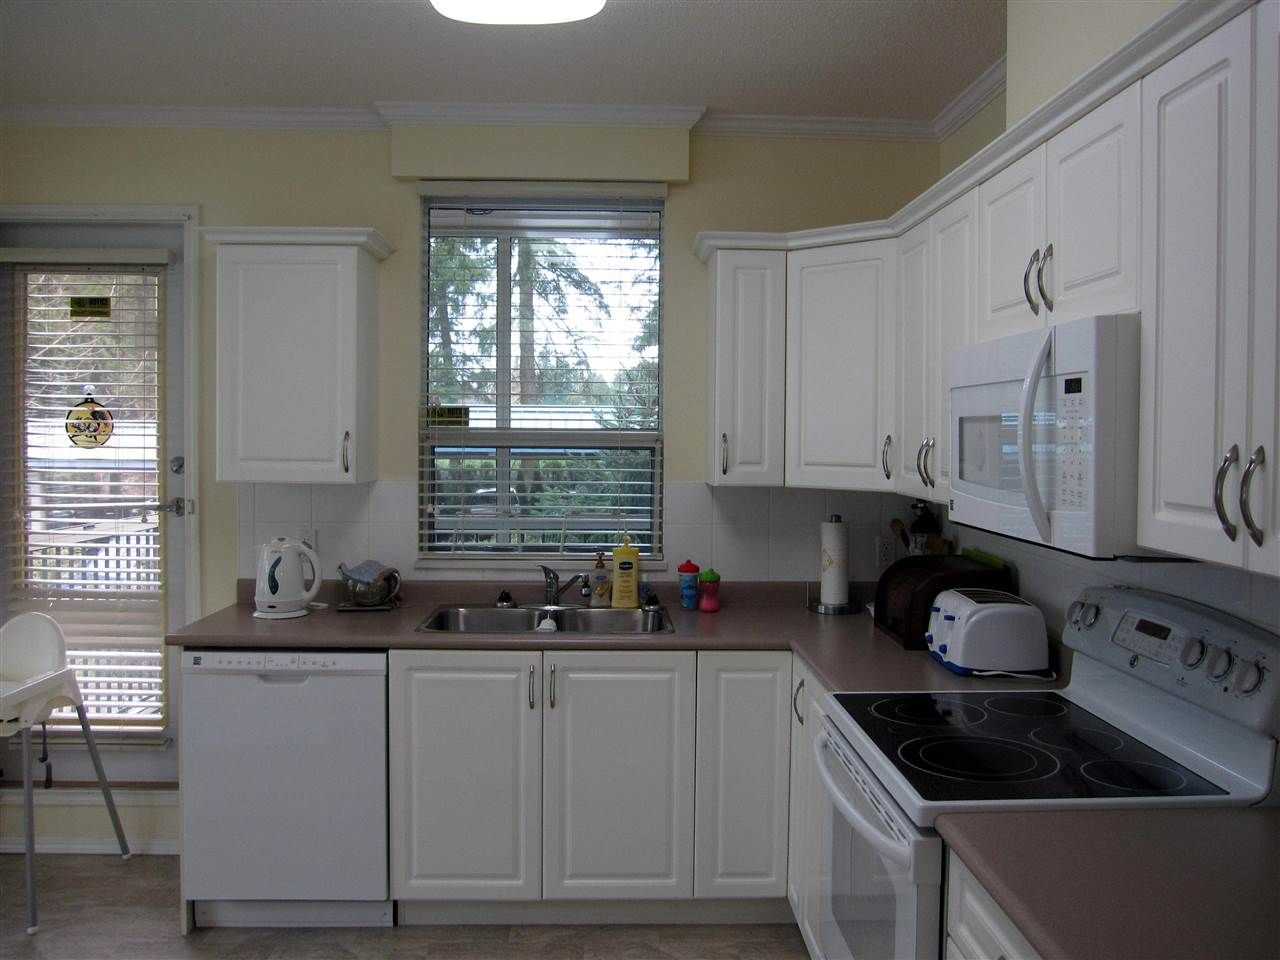 """Photo 6: Photos: 107 12148 224 Street in Maple Ridge: East Central Condo for sale in """"PANORAMA"""" : MLS®# R2153257"""